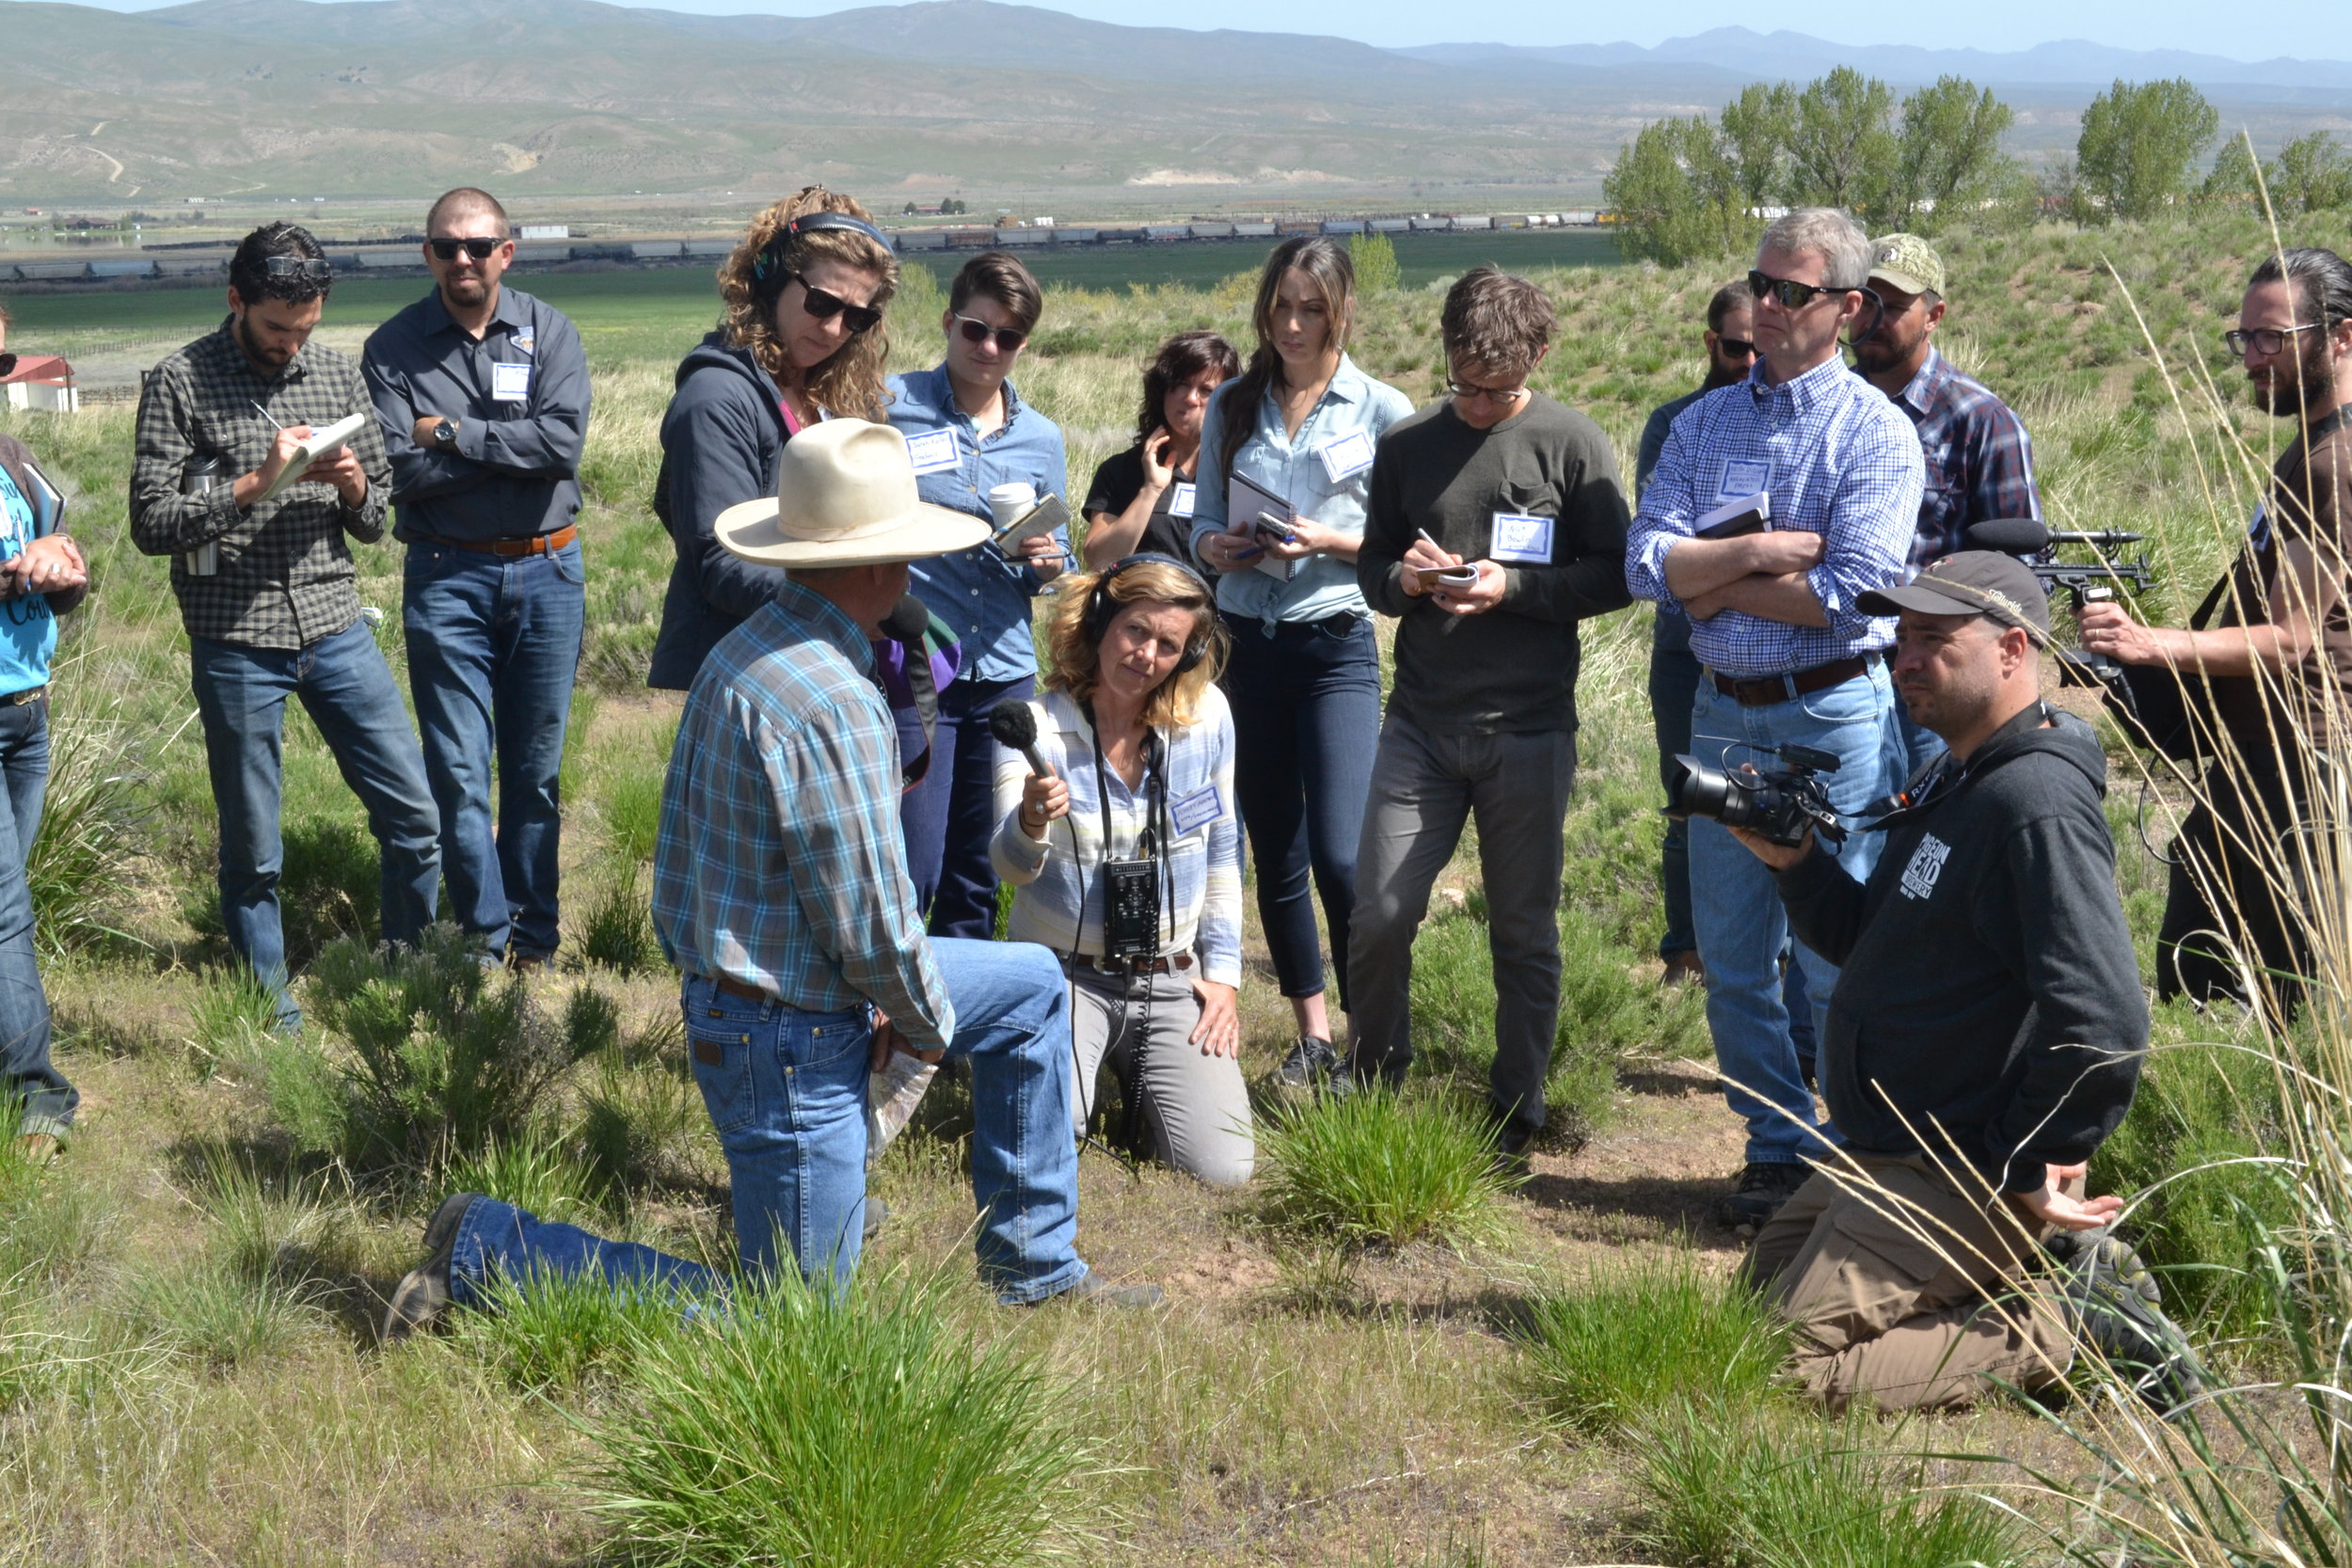 Jon Griggs, manager at Maggie Creek Ranch, spoke to journalists about the proactive management ranchers are implementing before a fire occurs. His labors and those of his peers attempts to lessen the impact fire has on livestock and wildlife.